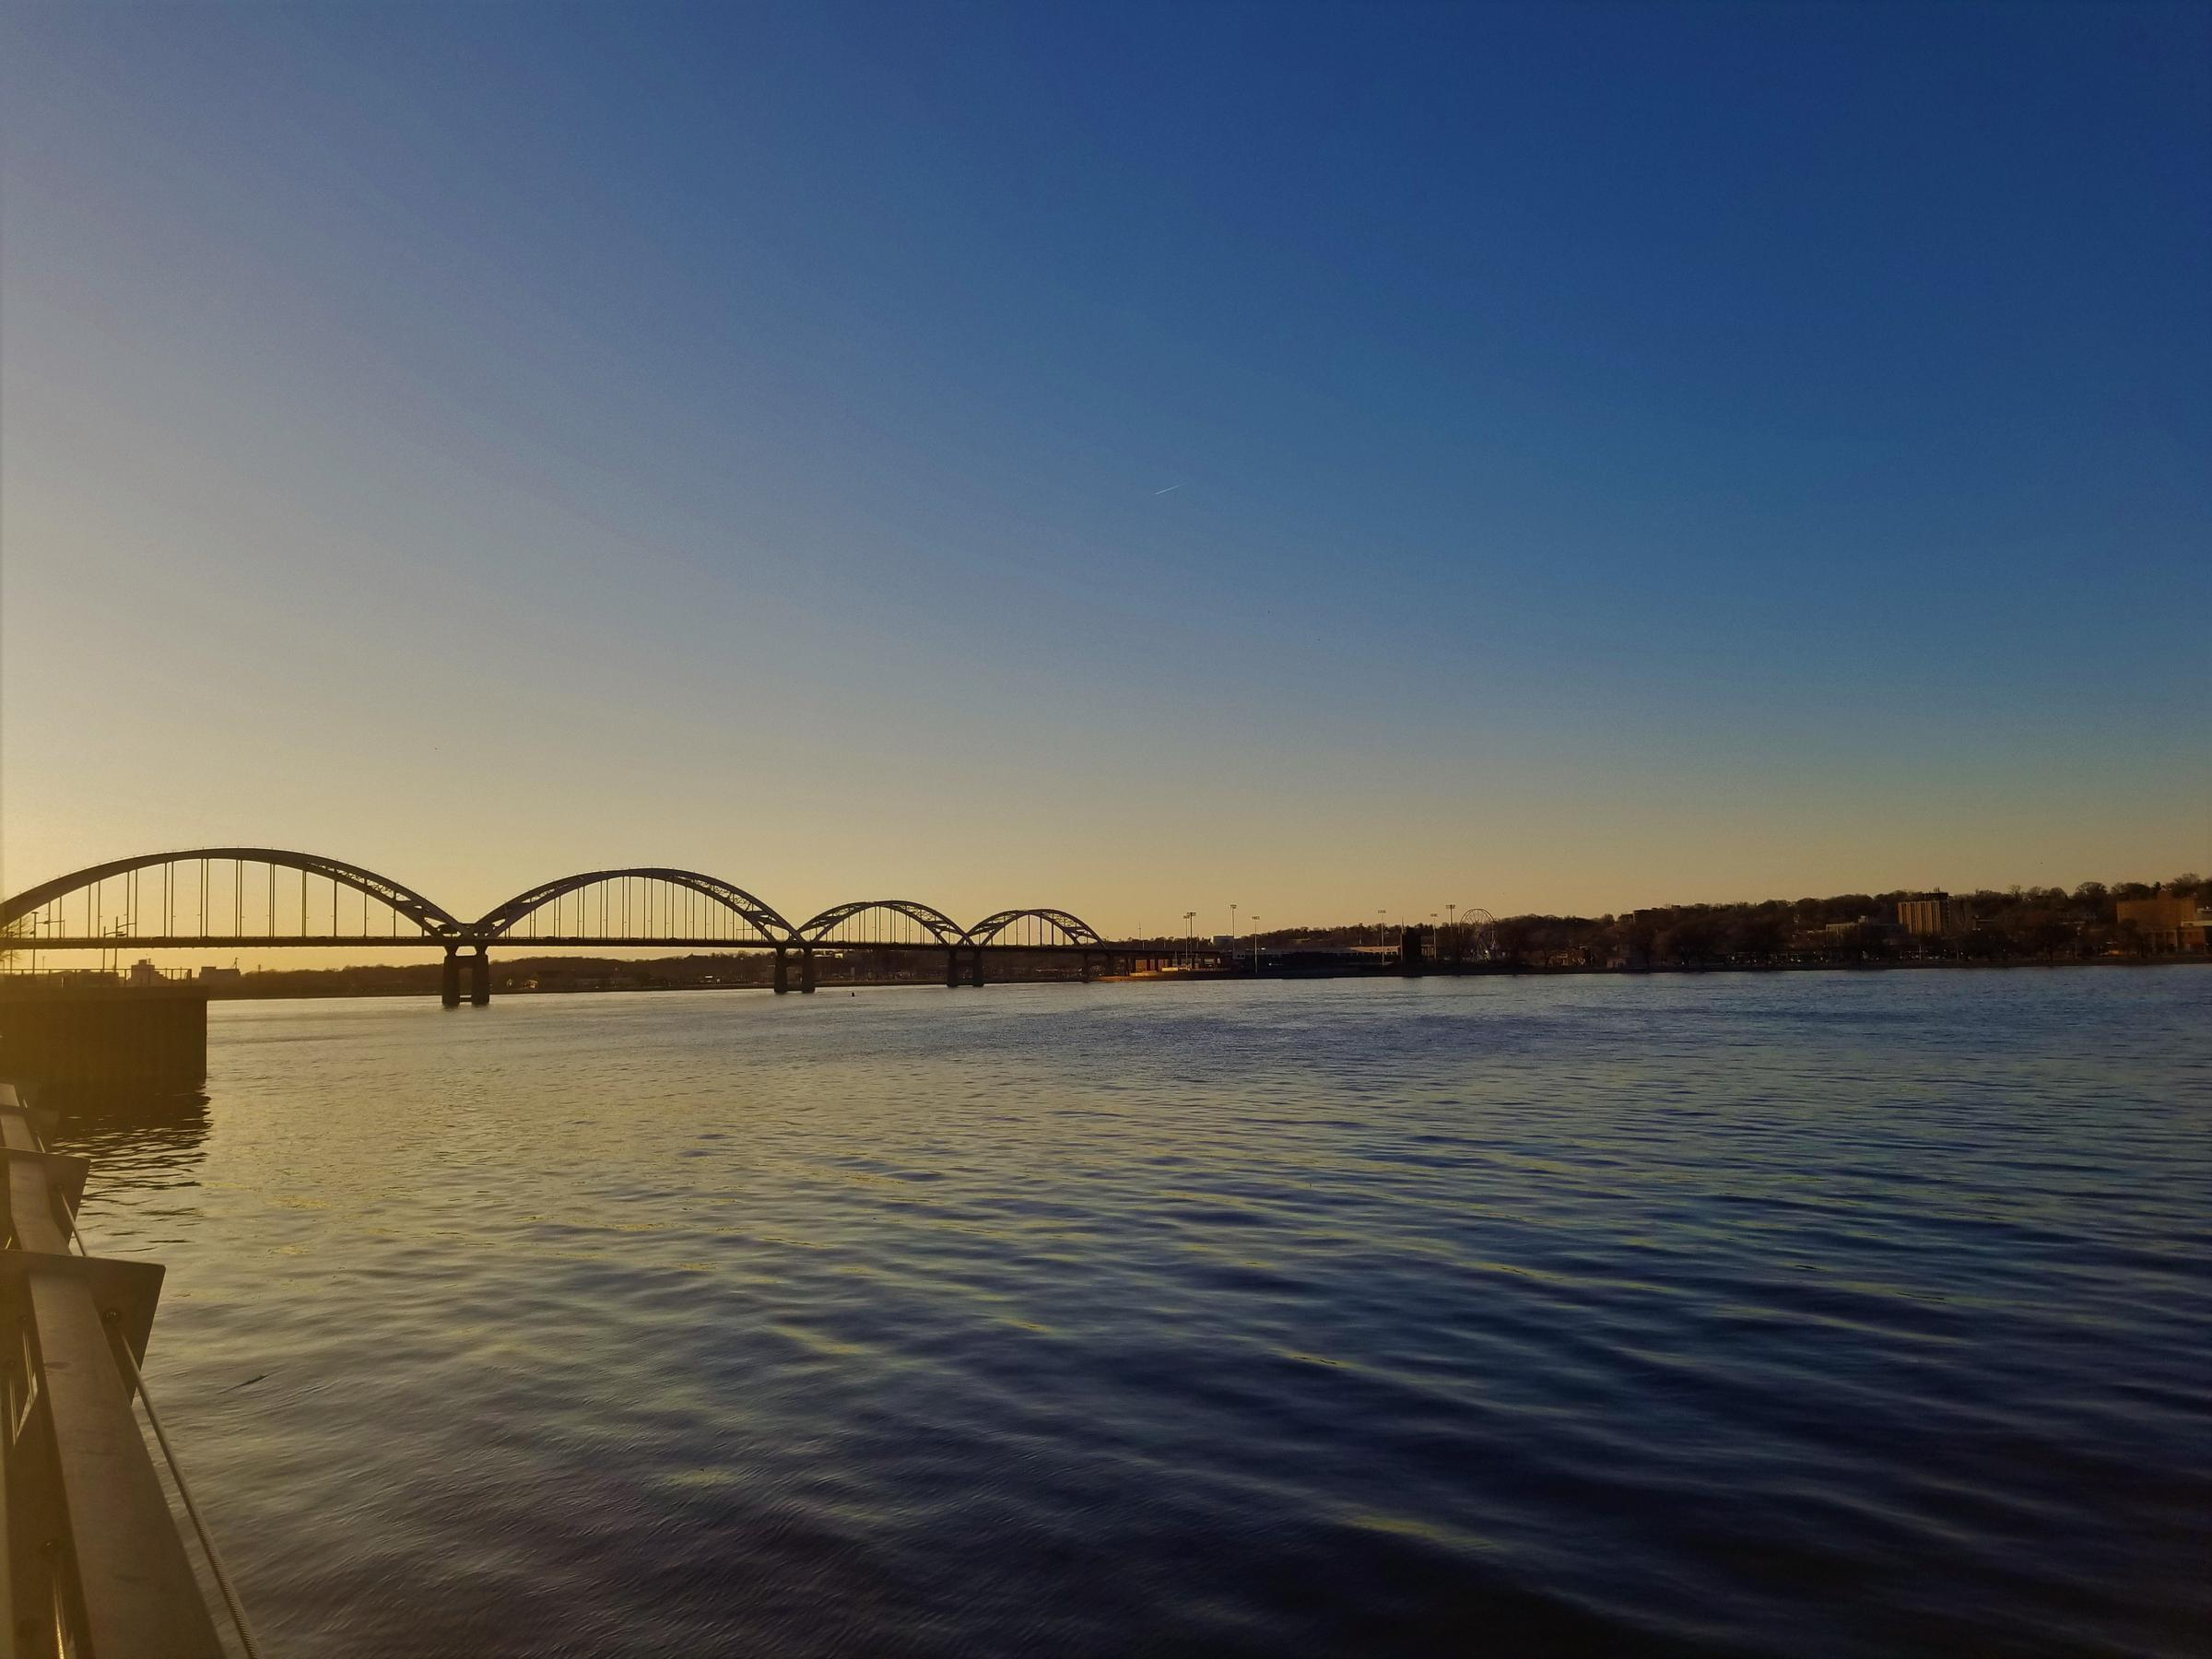 The Mississippi River running through the Quad Cities